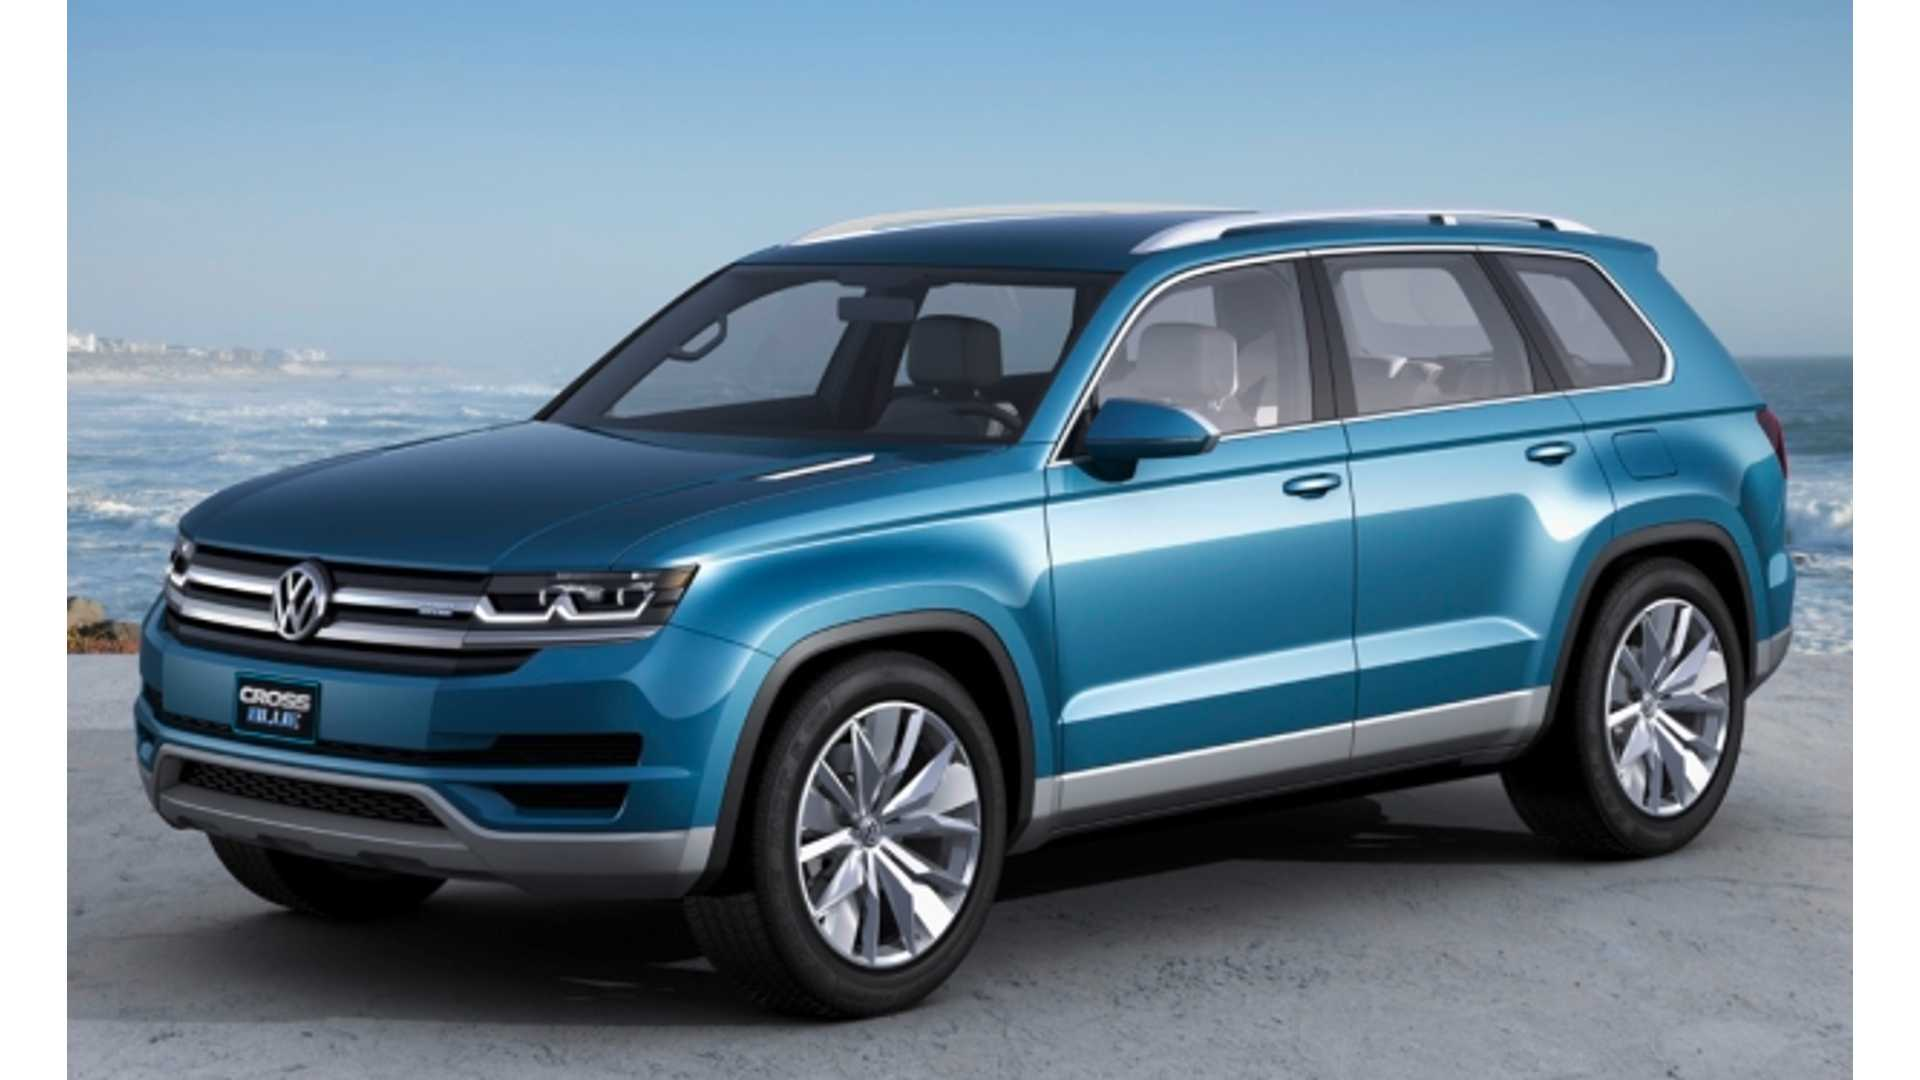 Volkswagen Confirms Us Launch Of Crossblue Based 7 Seat Suv In 2016 Phev Version Expected